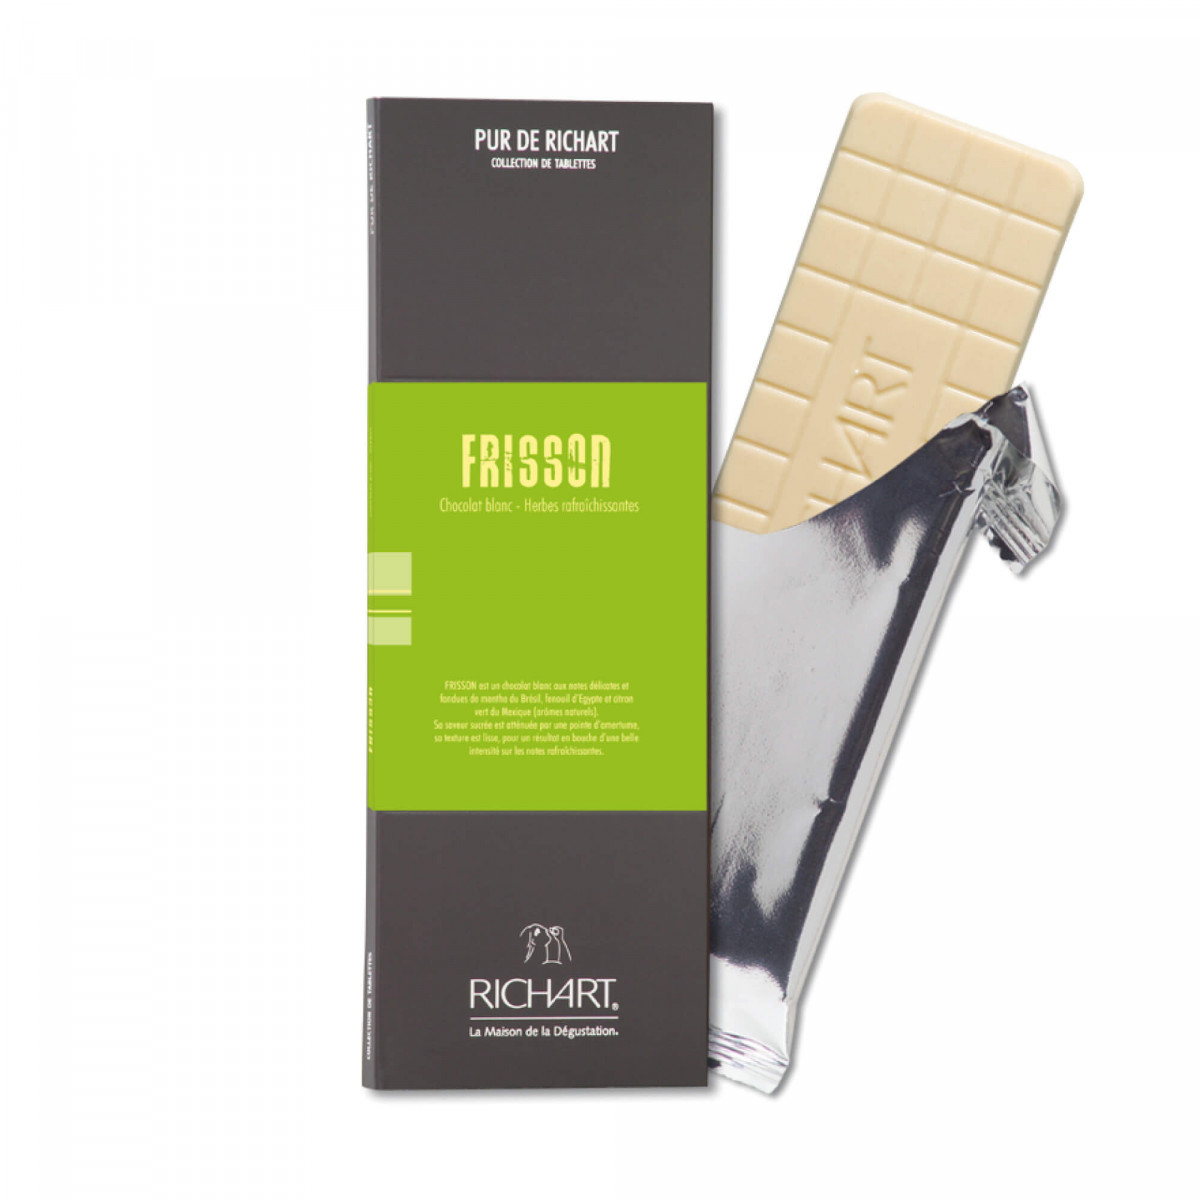 Great thrill White chocolate bar with herbal notes